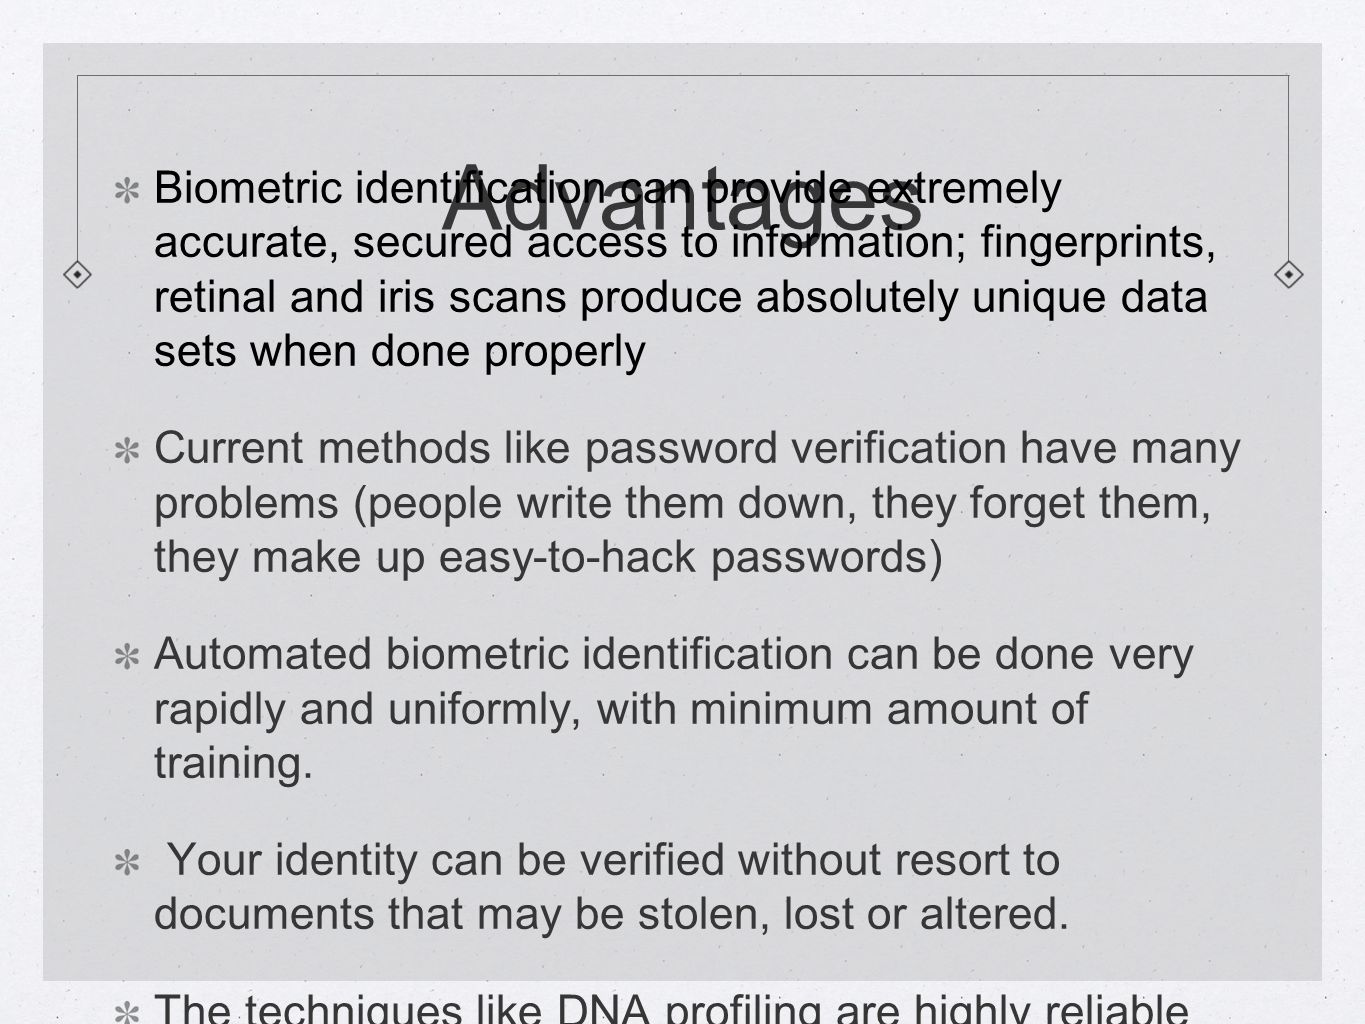 Advantages Biometric identification can provide extremely accurate, secured access to information; fingerprints, retinal and iris scans produce absolutely unique data sets when done properly Current methods like password verification have many problems (people write them down, they forget them, they make up easy-to-hack passwords) Automated biometric identification can be done very rapidly and uniformly, with minimum amount of training.